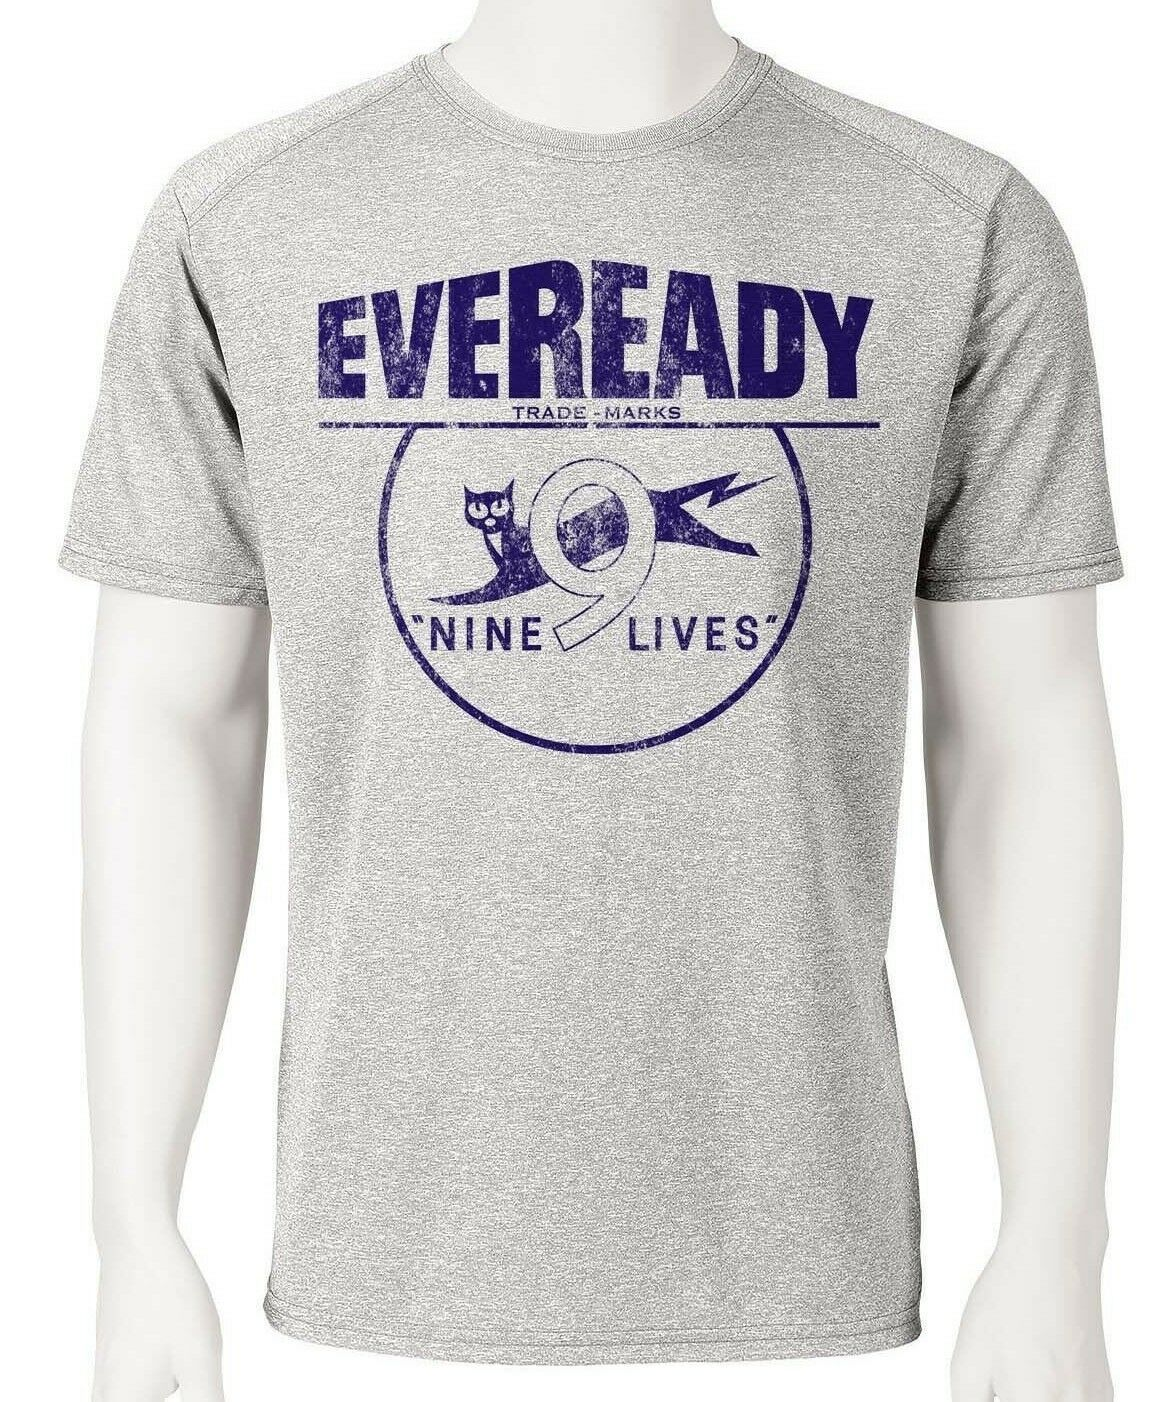 Eveready dri fit graphic tshirt moisture wicking car stereo spf active wear tee